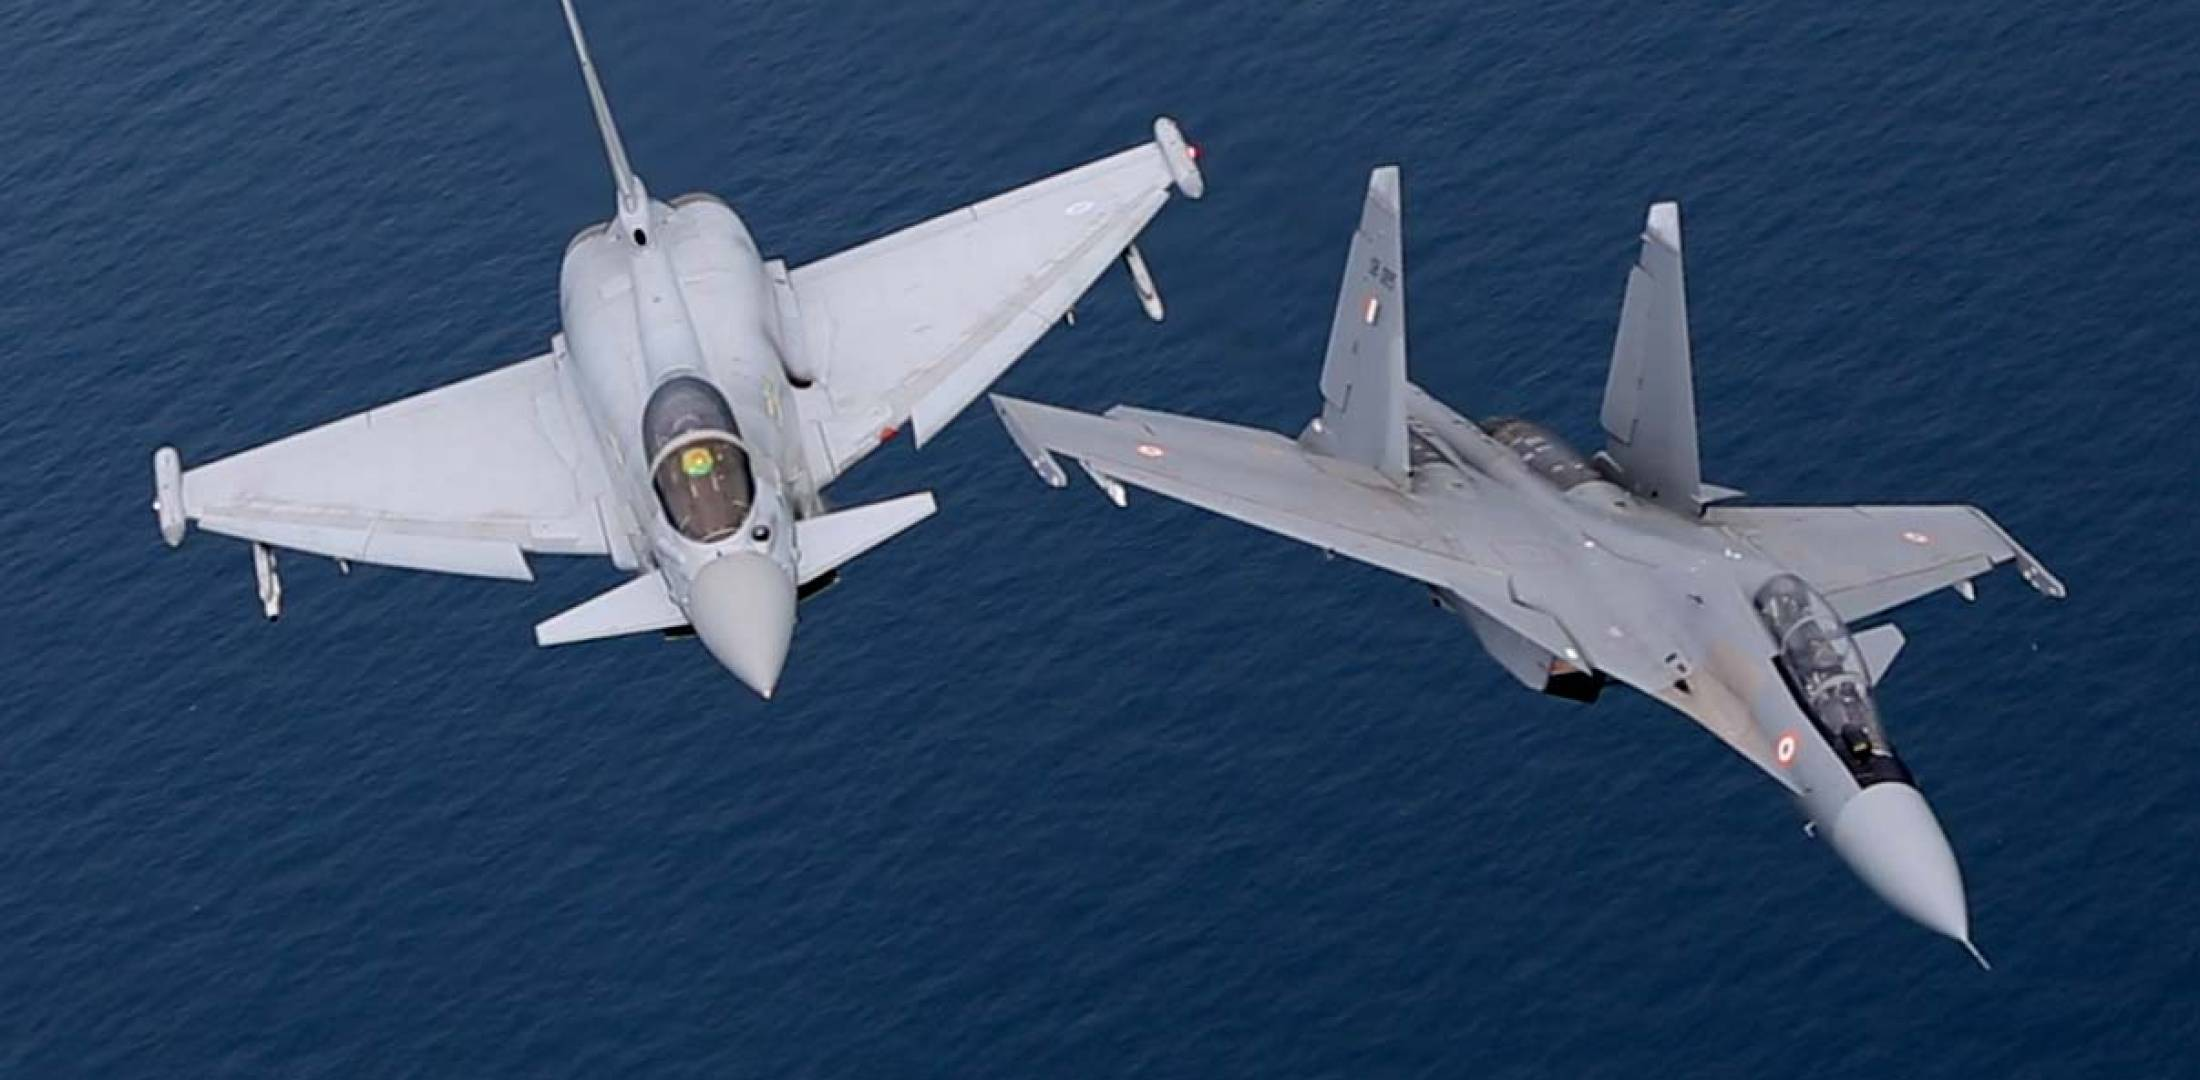 RAF Typhoon, left, and Indian Flanker maneuver during joint exercise. (Photo: MoD Crown Copyright)